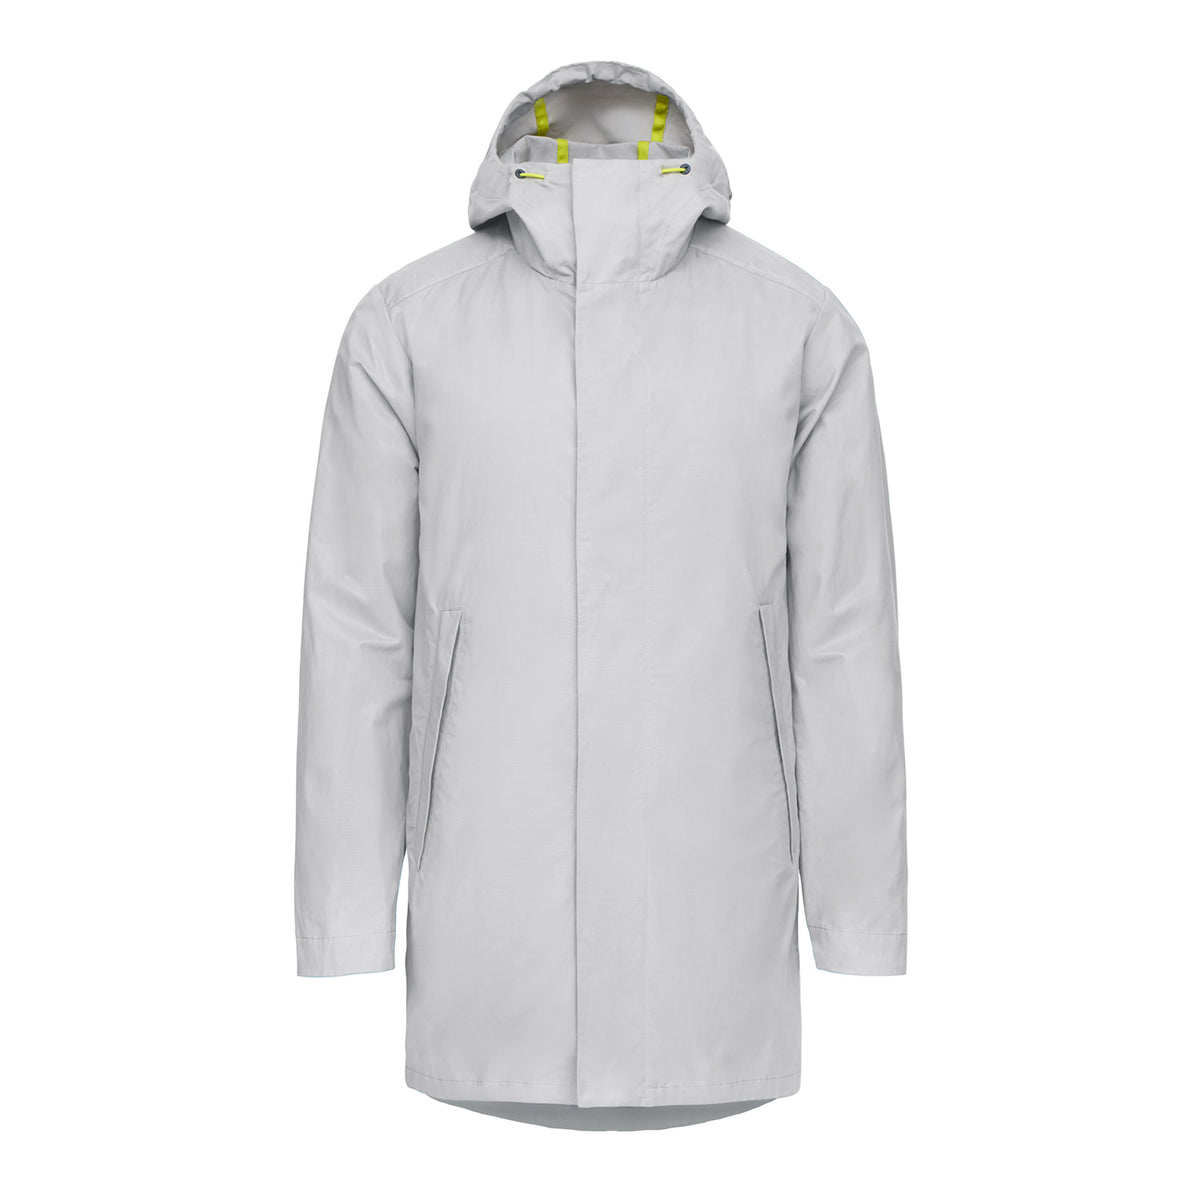 Motion Parkas - background::white,variant::Alloy